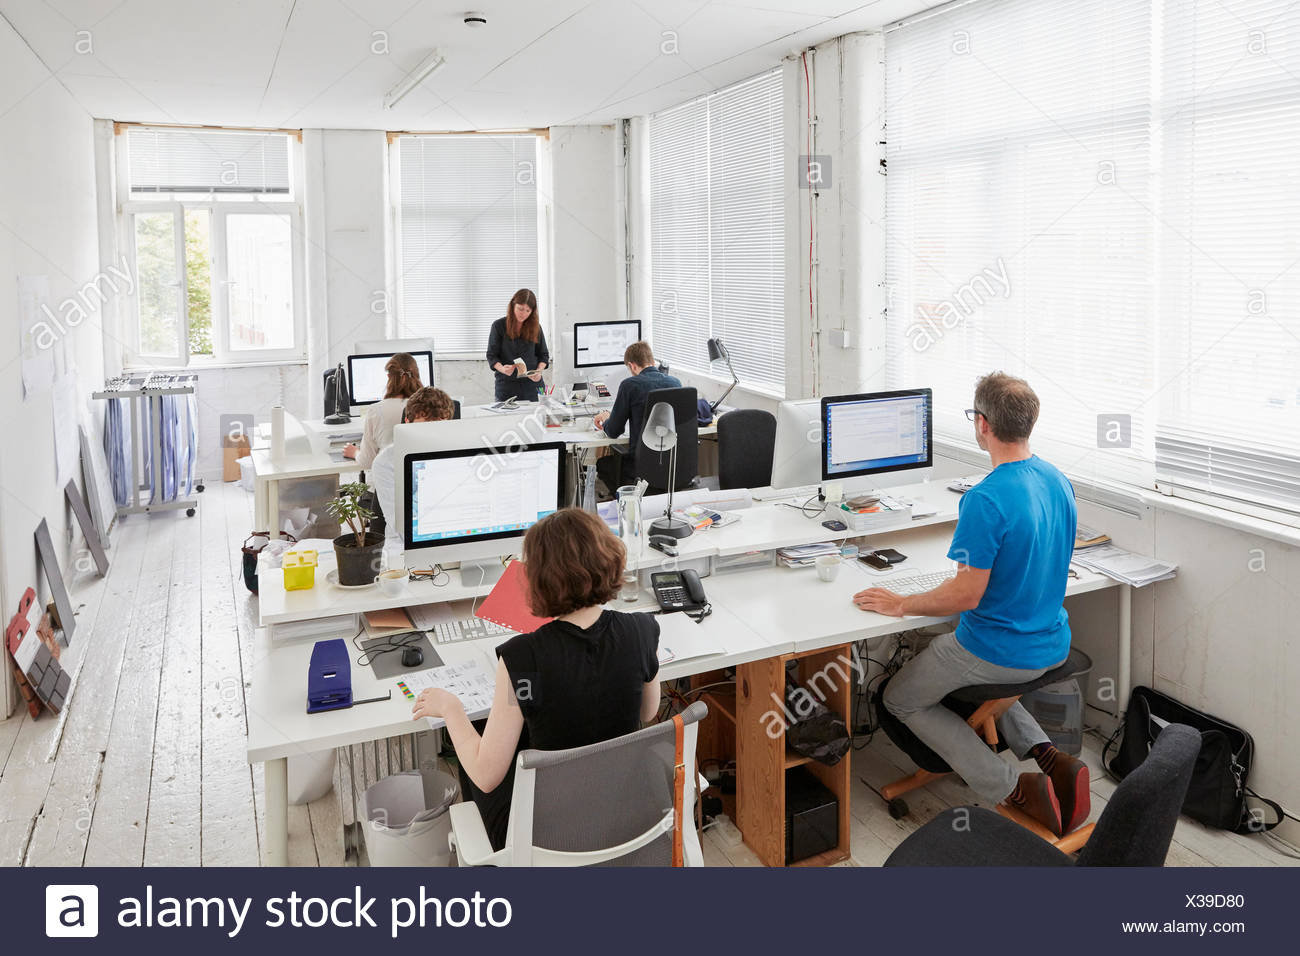 A modern office, workstations for staff. Elevated view of six people seated at desks. A man using an ergonomic kneeler chair. - Stock Image